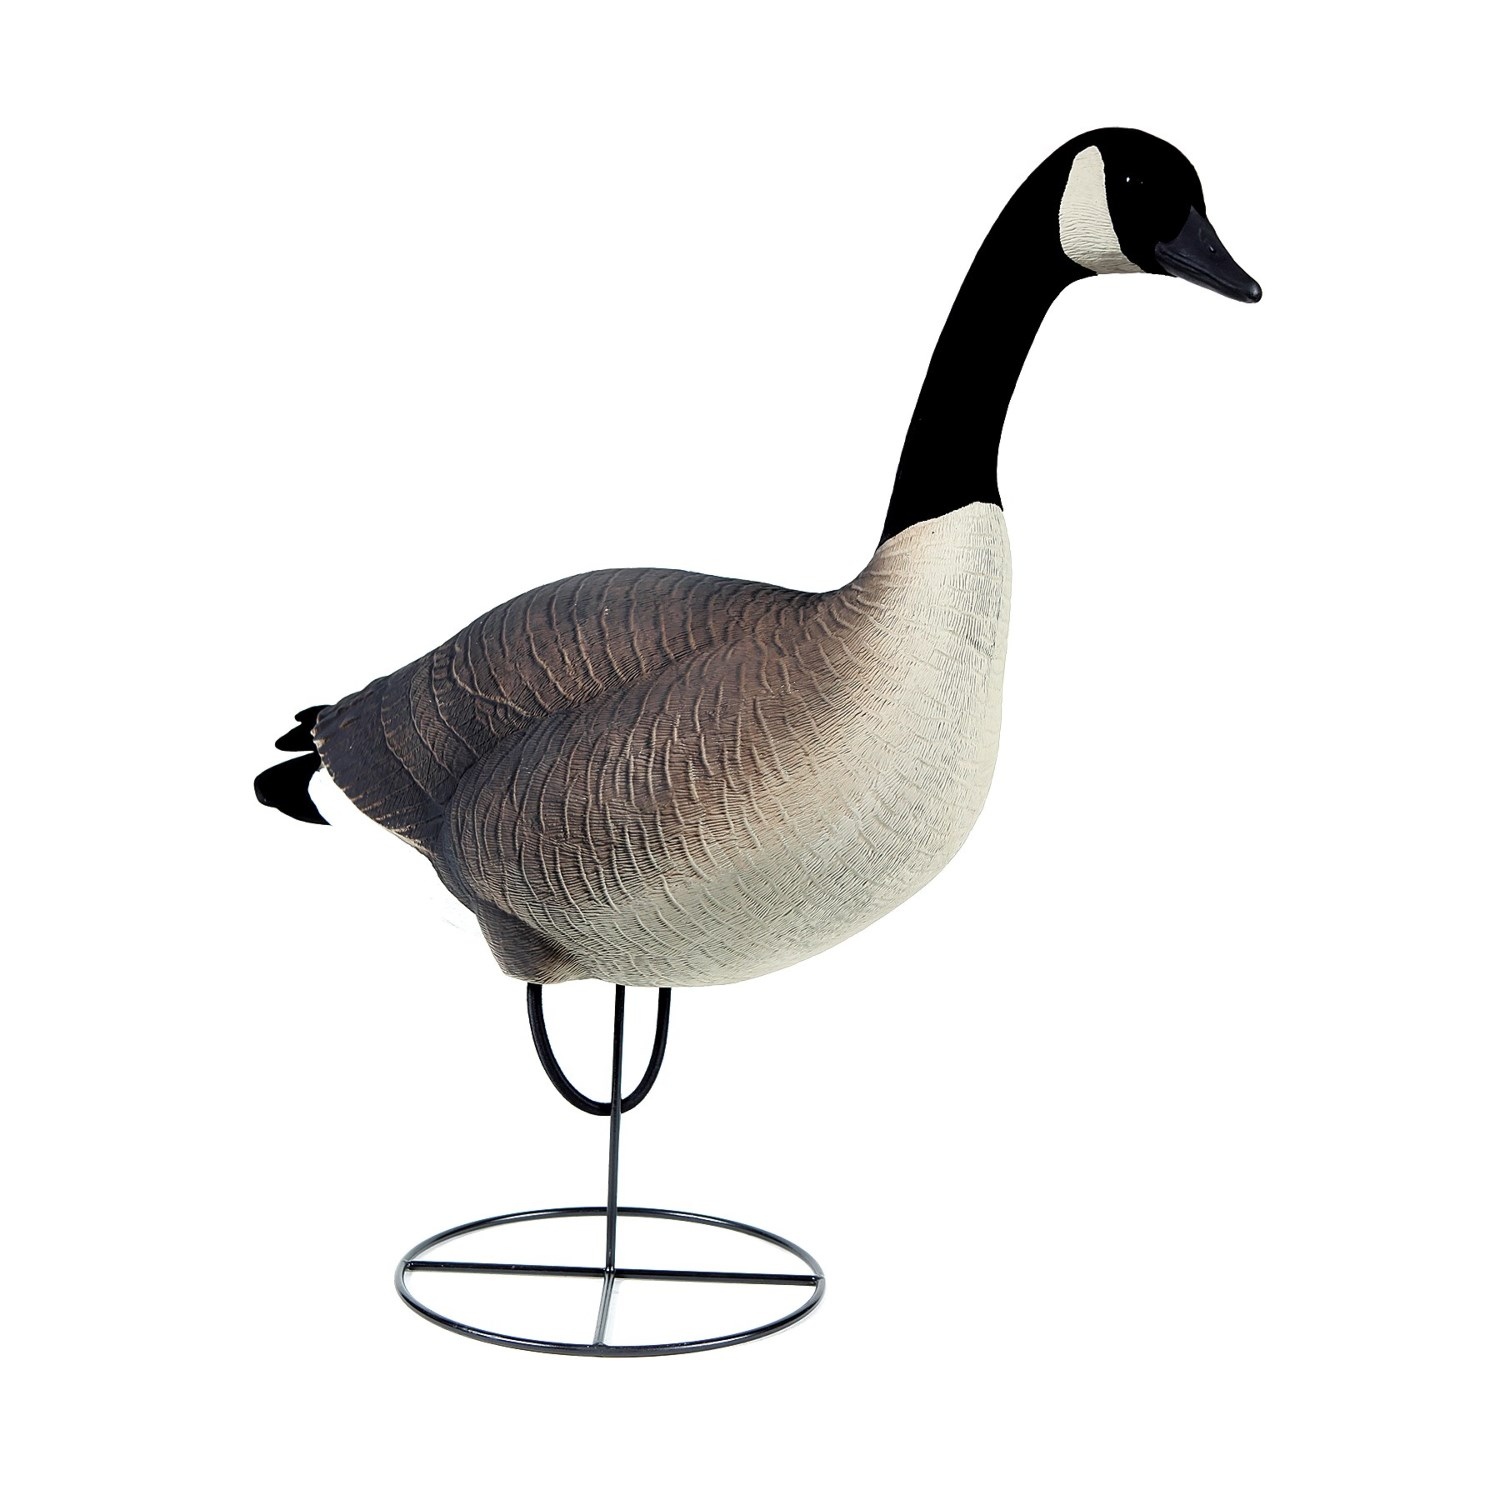 Tanglefree Pro Series Canada Goose' Full Body Fully Flocked Upright